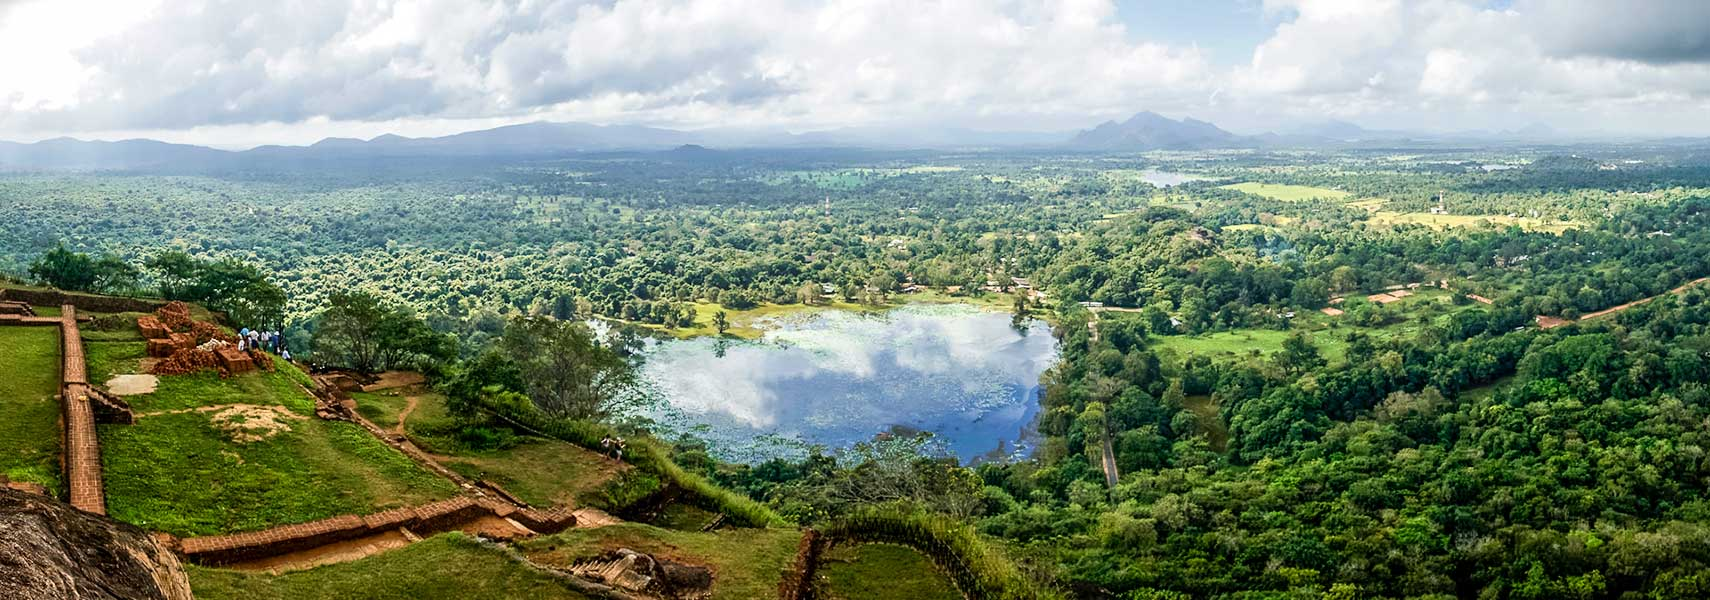 View from Sigiriya, Matale District, Sri Lanka